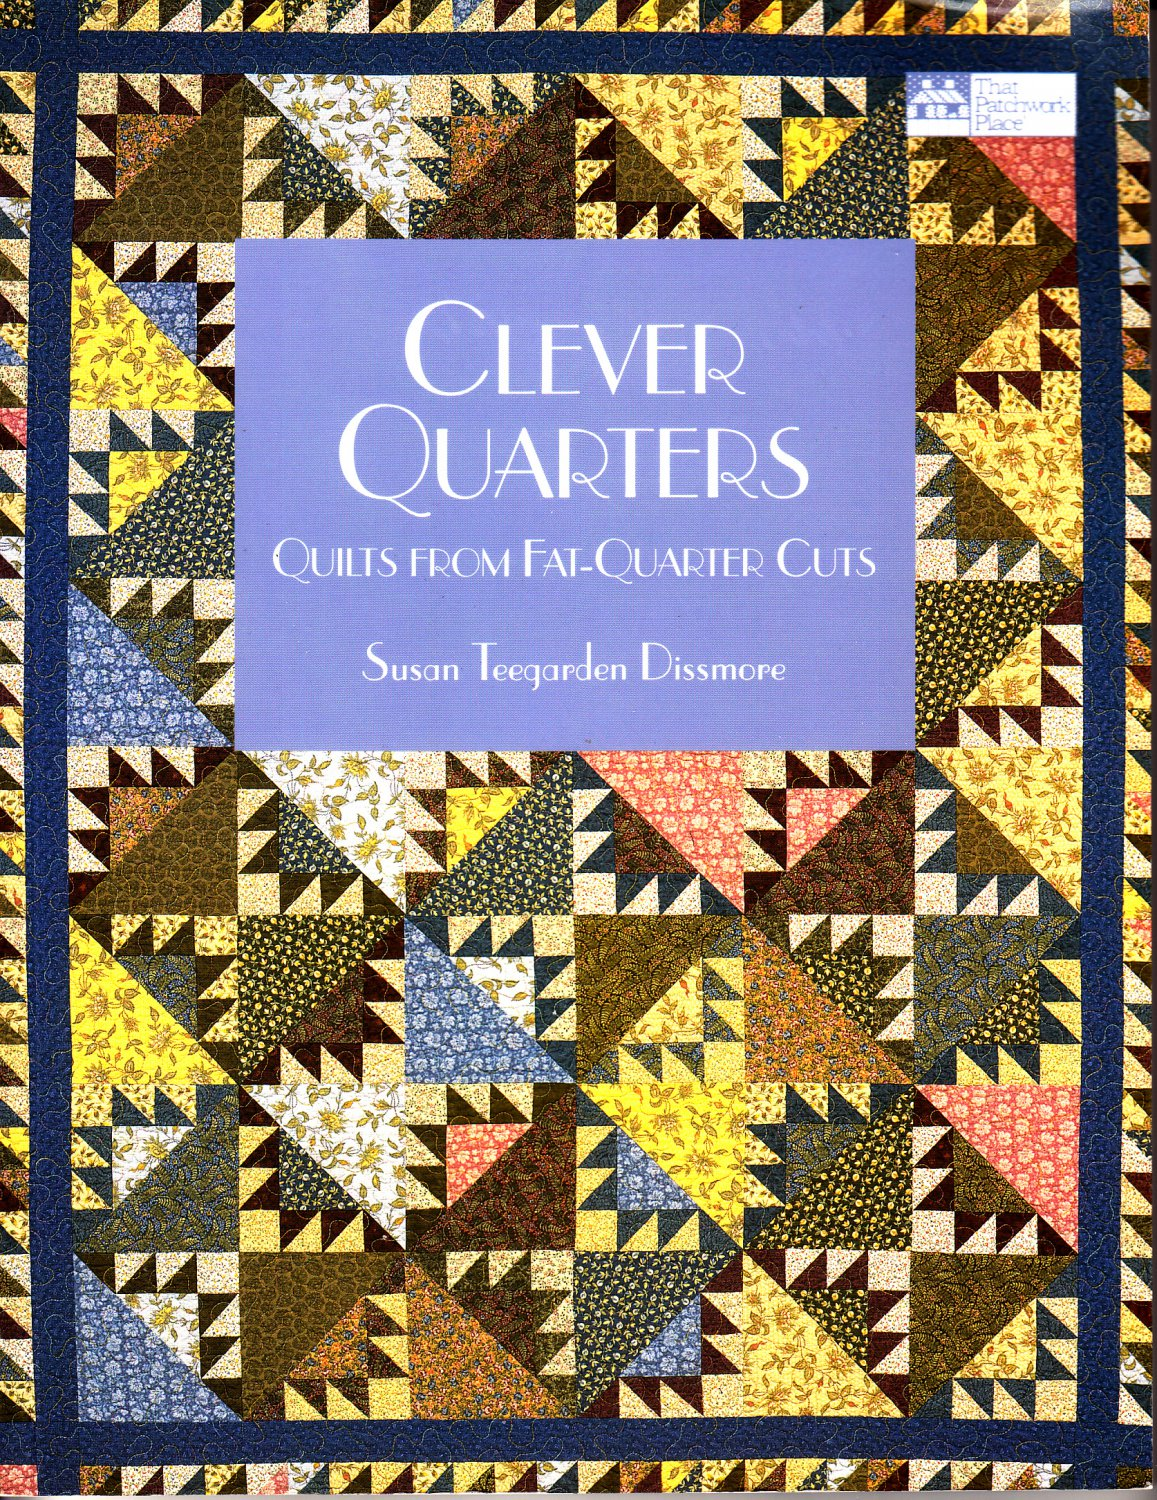 Clever Quarters: Quilts From Fat-Quarter Cuts by Susan Teegarden Dissmore